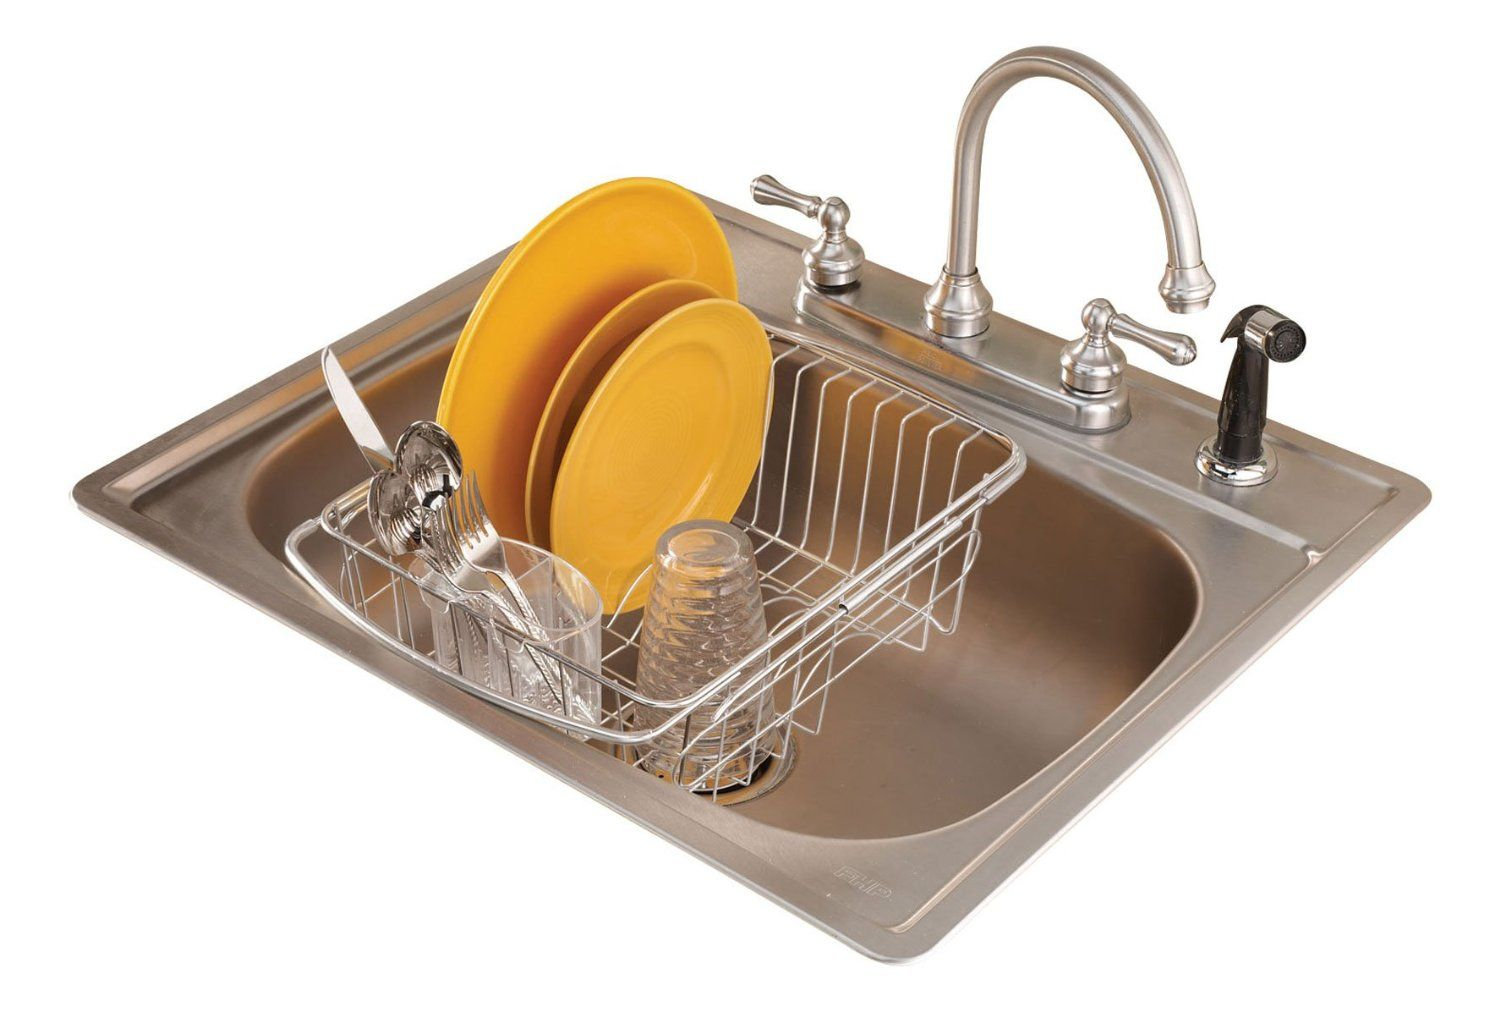 Over The Sink Dish Drainer Rack Good For Single Compartment Sinks